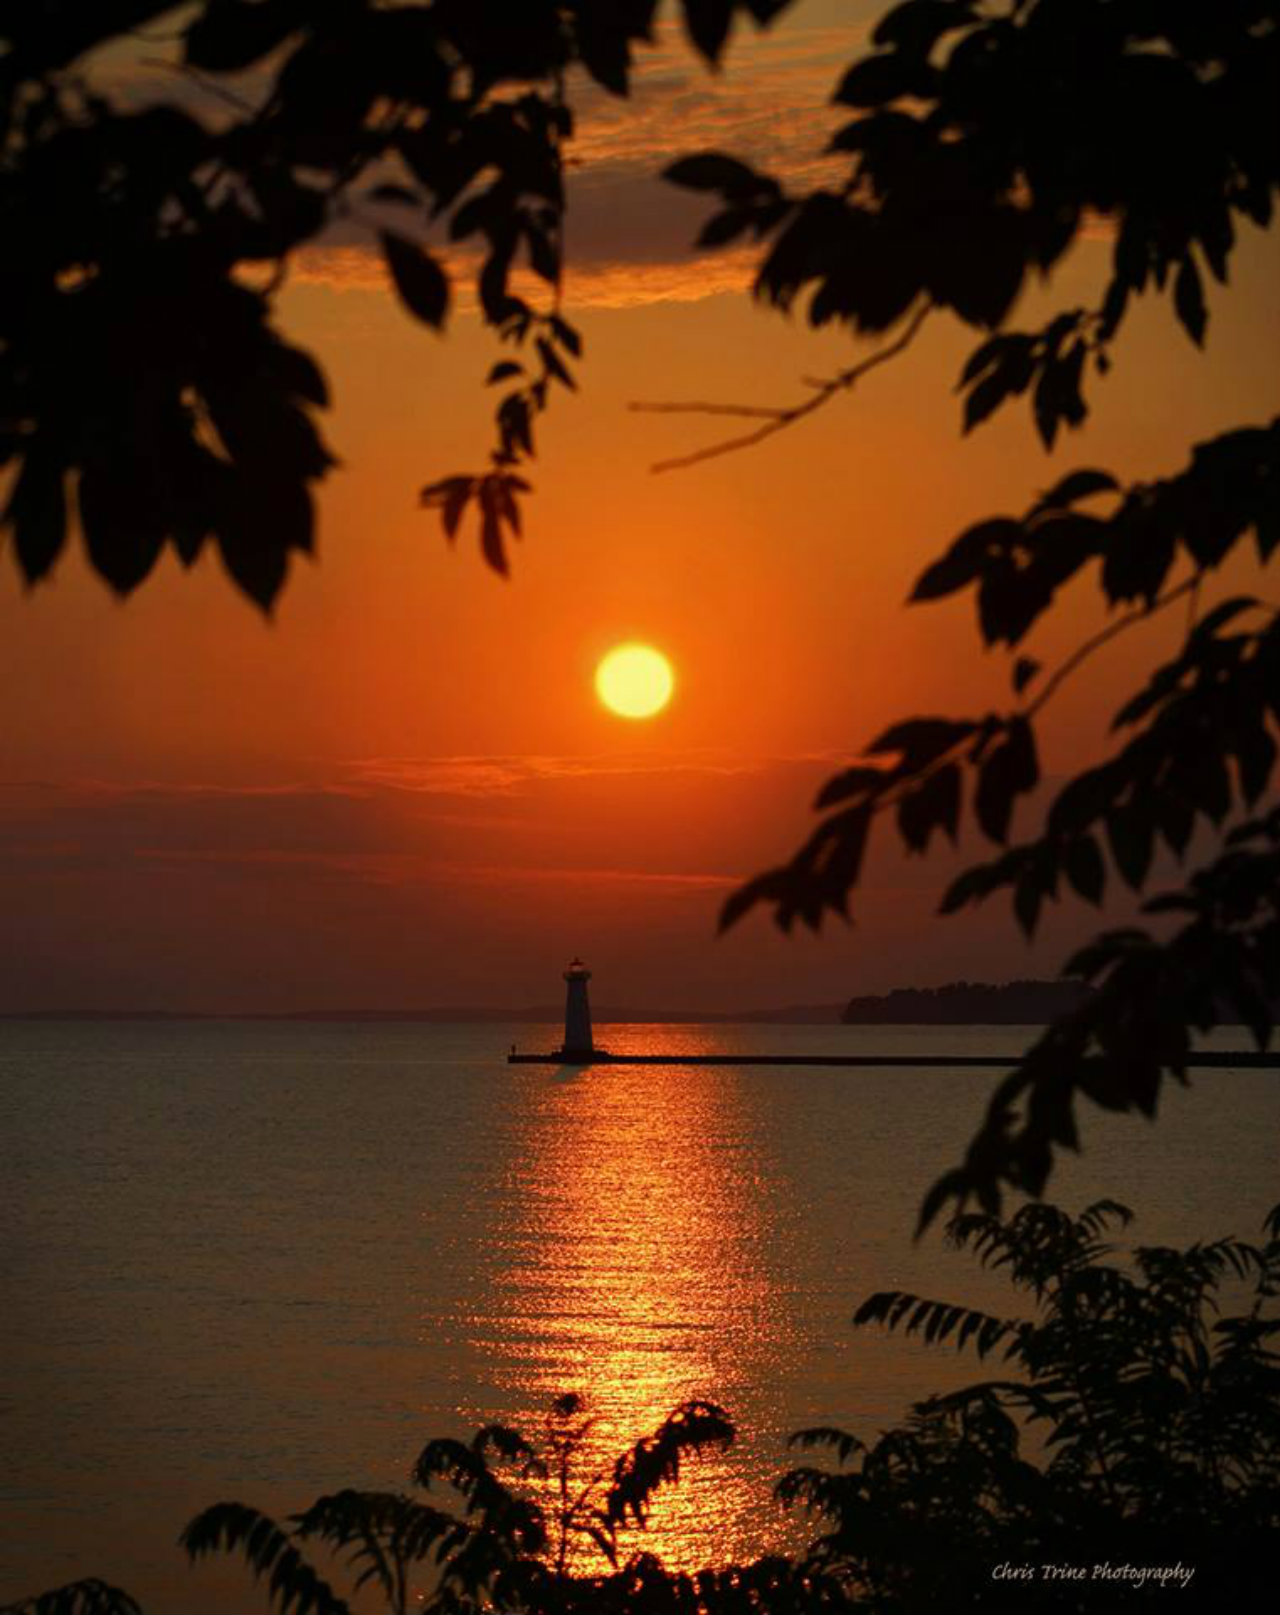 Lighthouse in Sodus at sunset (photo)